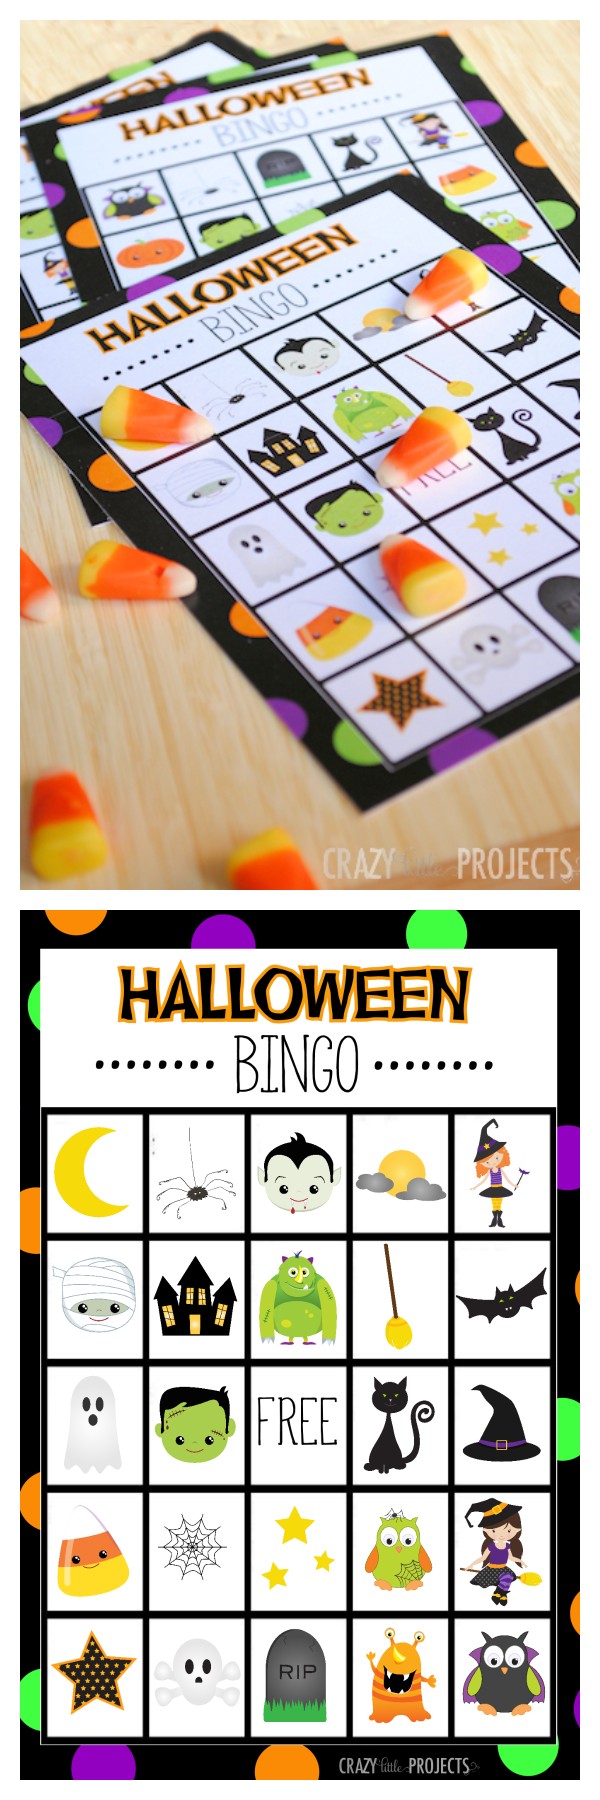 photograph regarding 25 Printable Halloween Bingo Cards named 25 Cost-free Halloween Printables Household Solutions